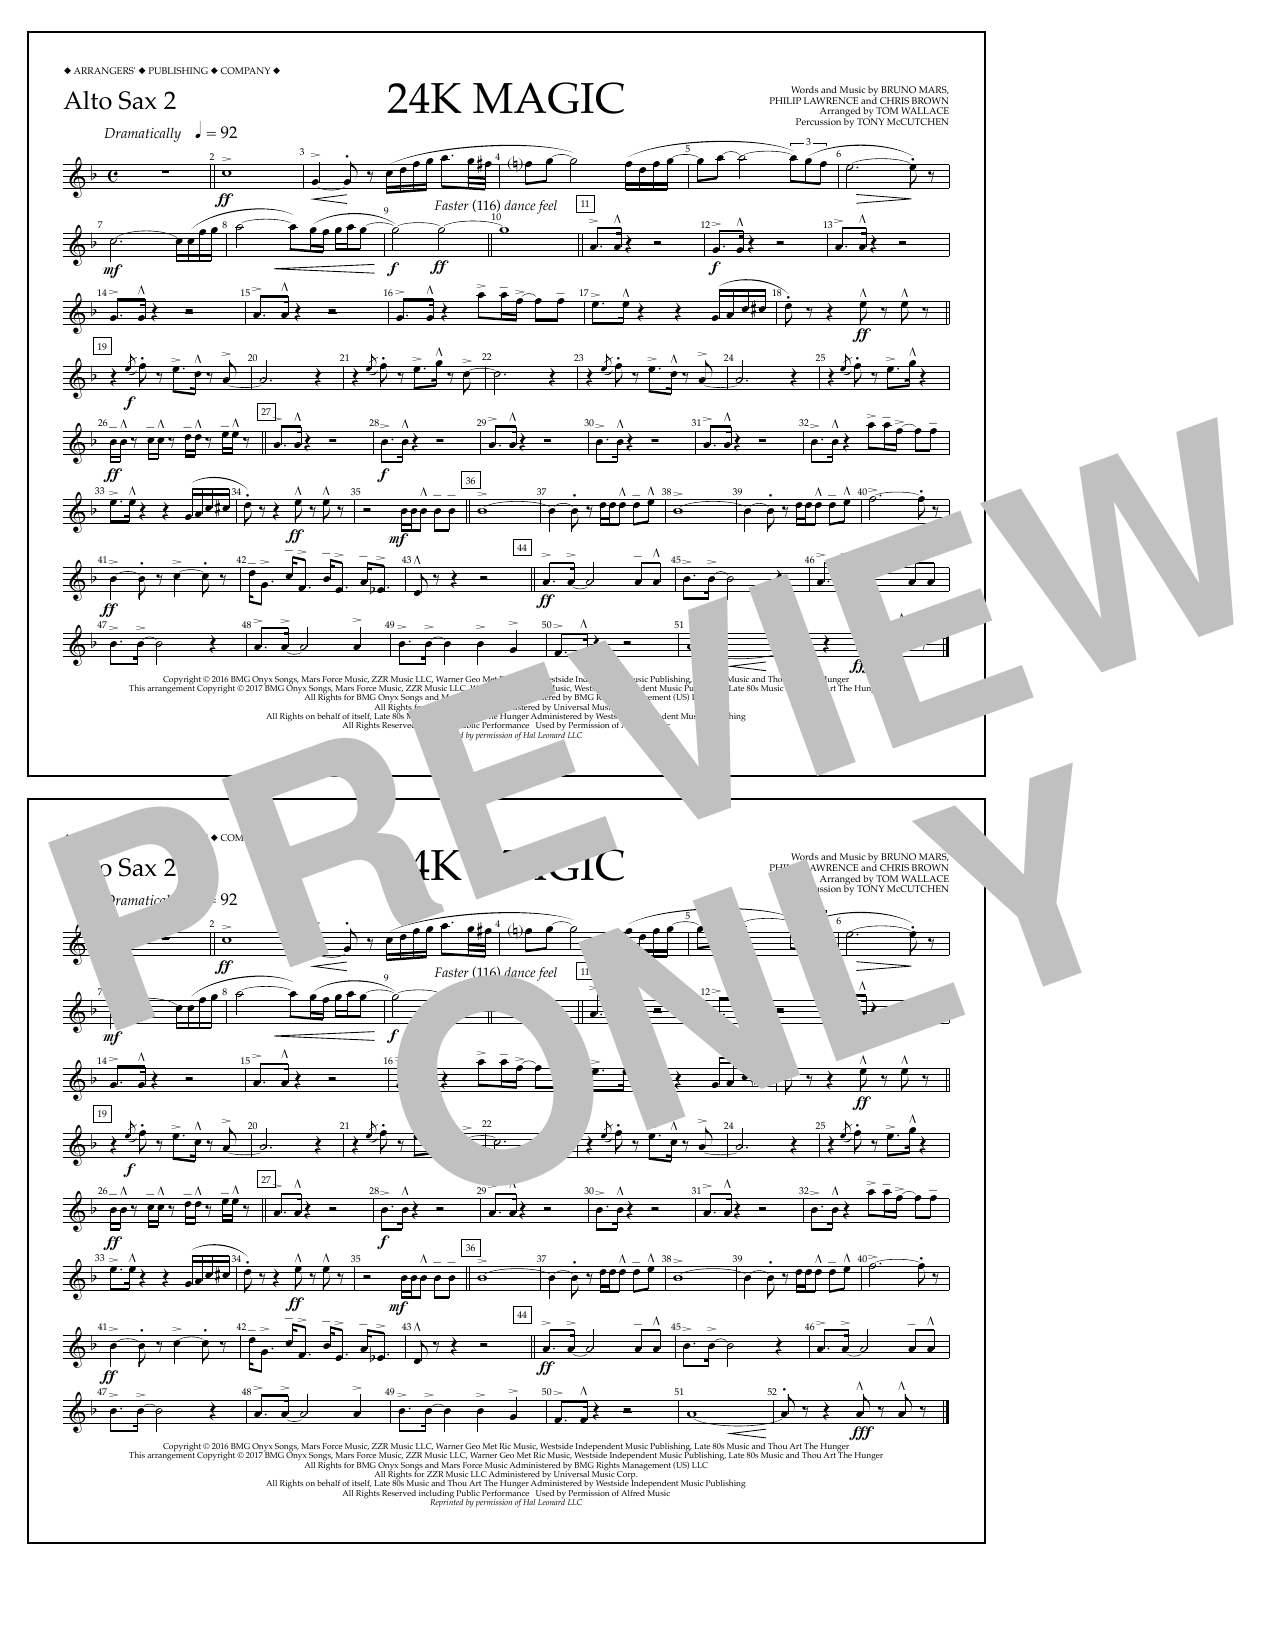 24K Magic - Alto Sax 2 Sheet Music